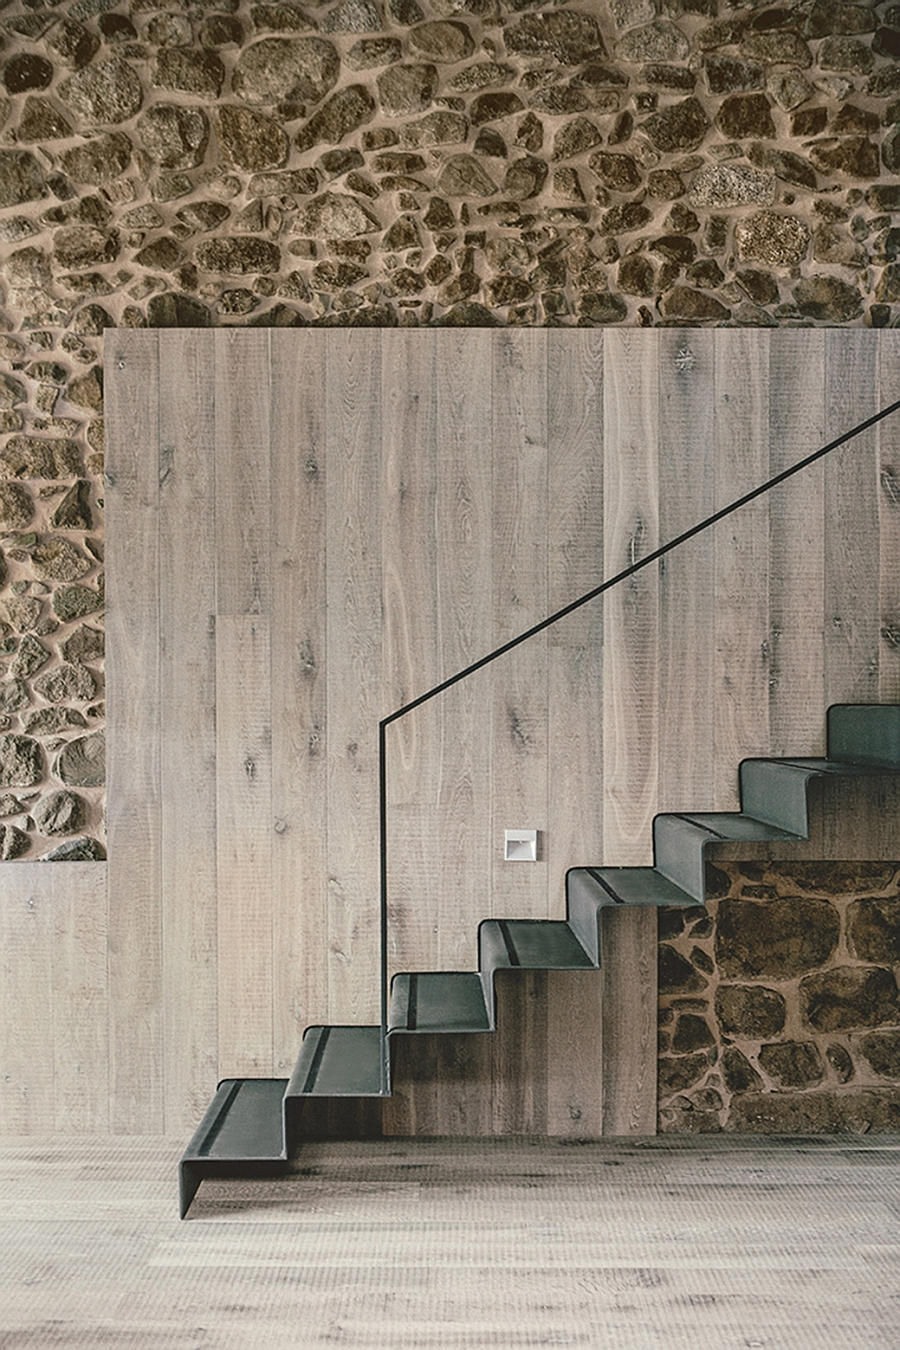 Smart use of contrasting textures to shape the stylish staicase